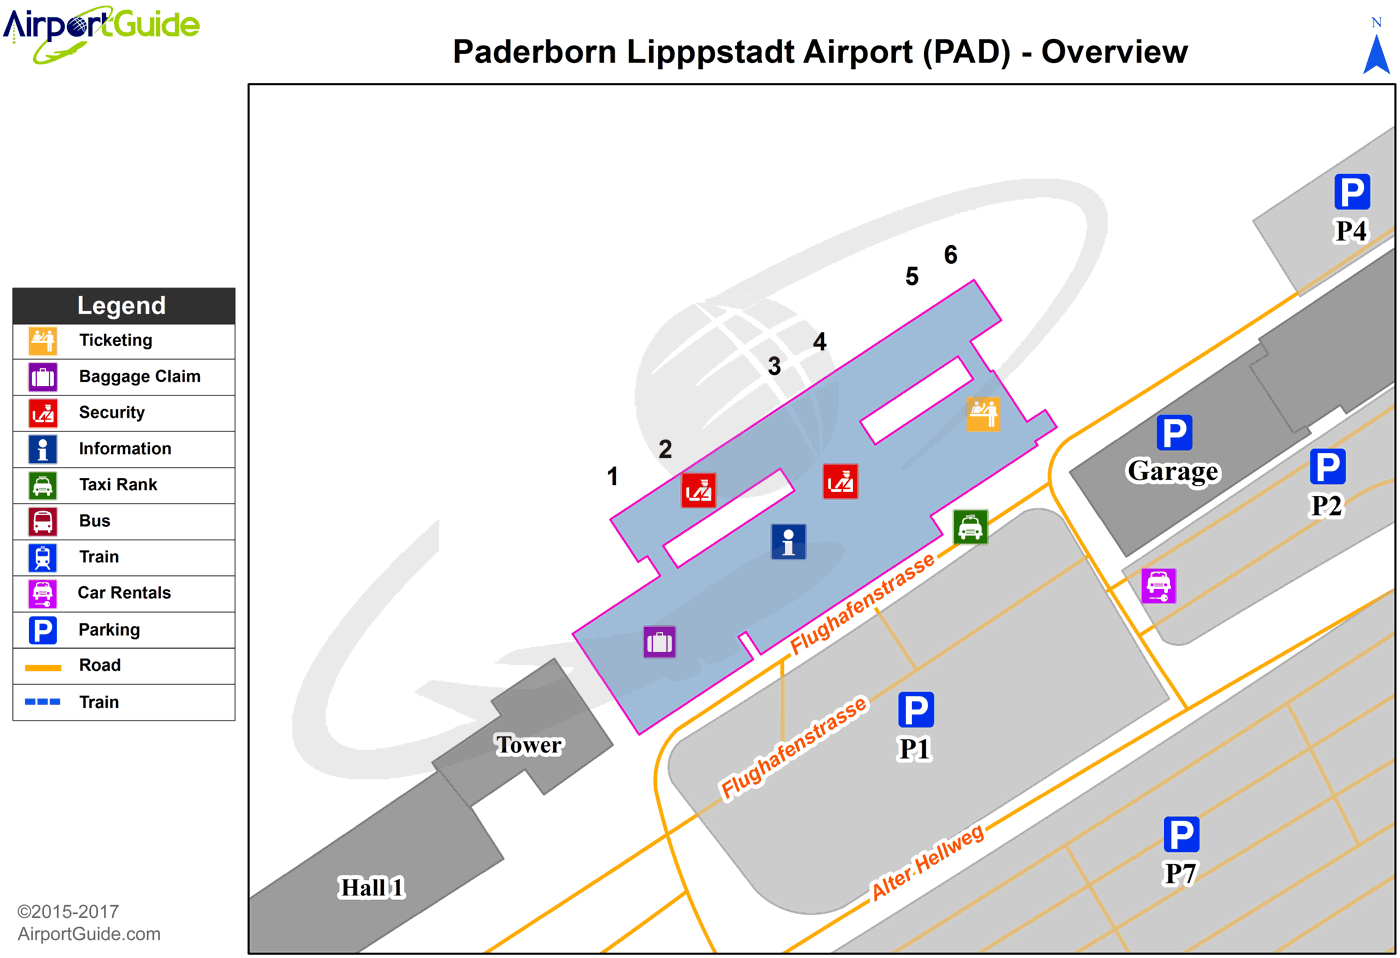 Paderborn - Paderborn Lippstadt (PAD) Airport Terminal Maps ... on bed map, key map, fan map, poetry map, pa map, seat map, strip map, los angeles city map, owl and mouse map, stroke map, map map, mac map, iphone map, wall map, link map,